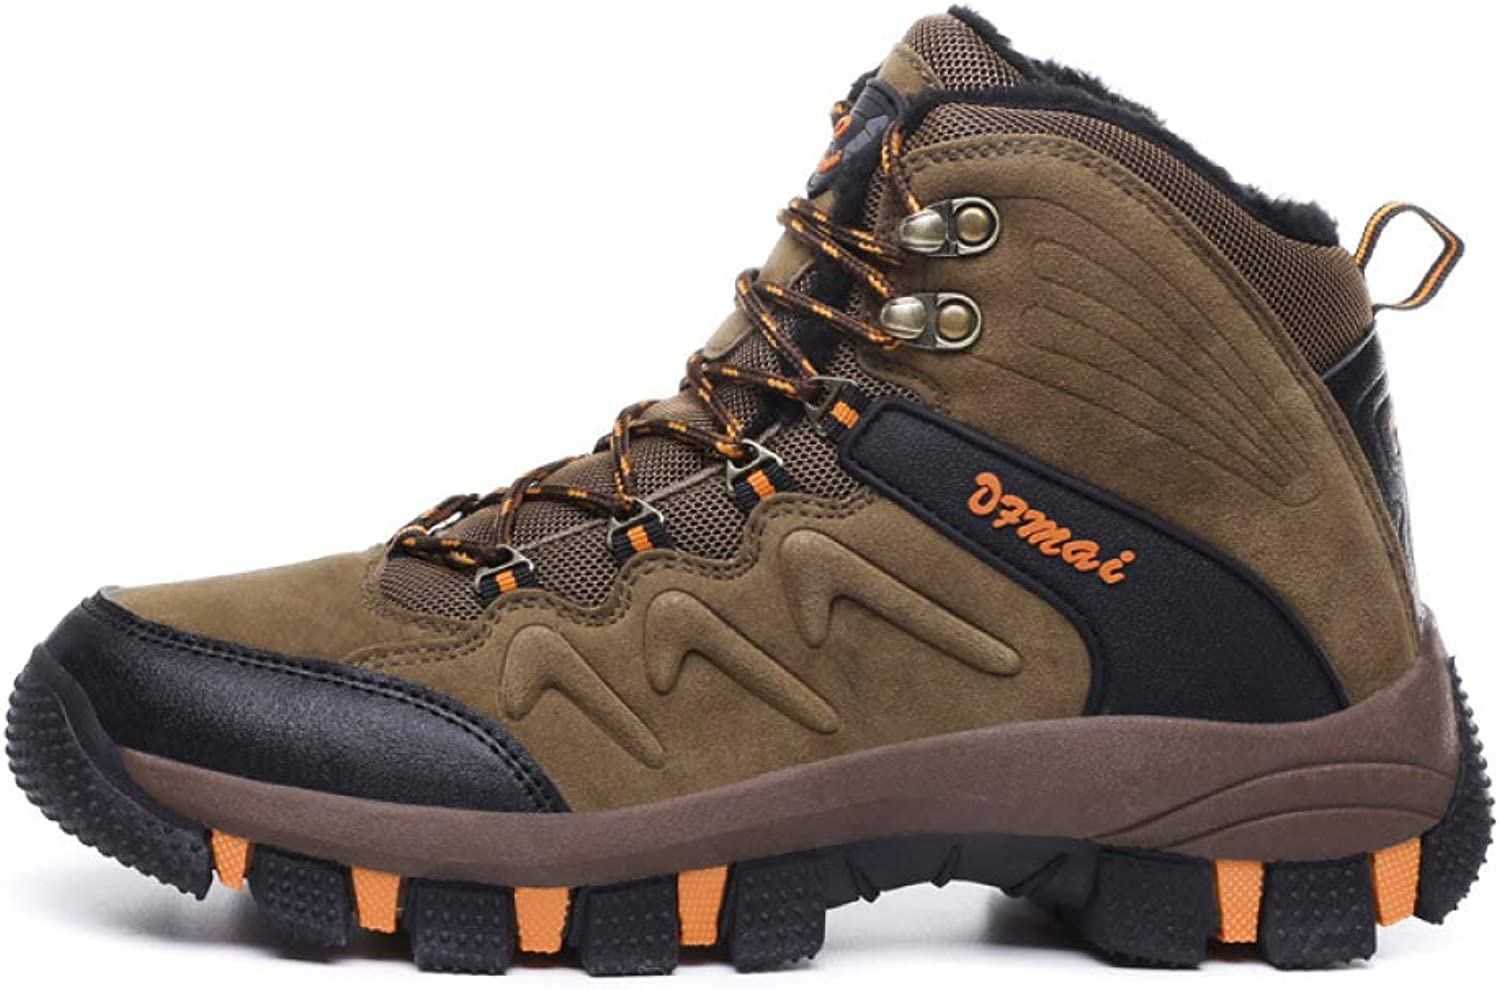 DZX Men's Winter Non-Slip Snow Boots Hiking Trekking Walking Outdoor shoes,Waterproof Climbing Athletic shoes Sneakers,Fully Fur Lined Boots,Brown-42